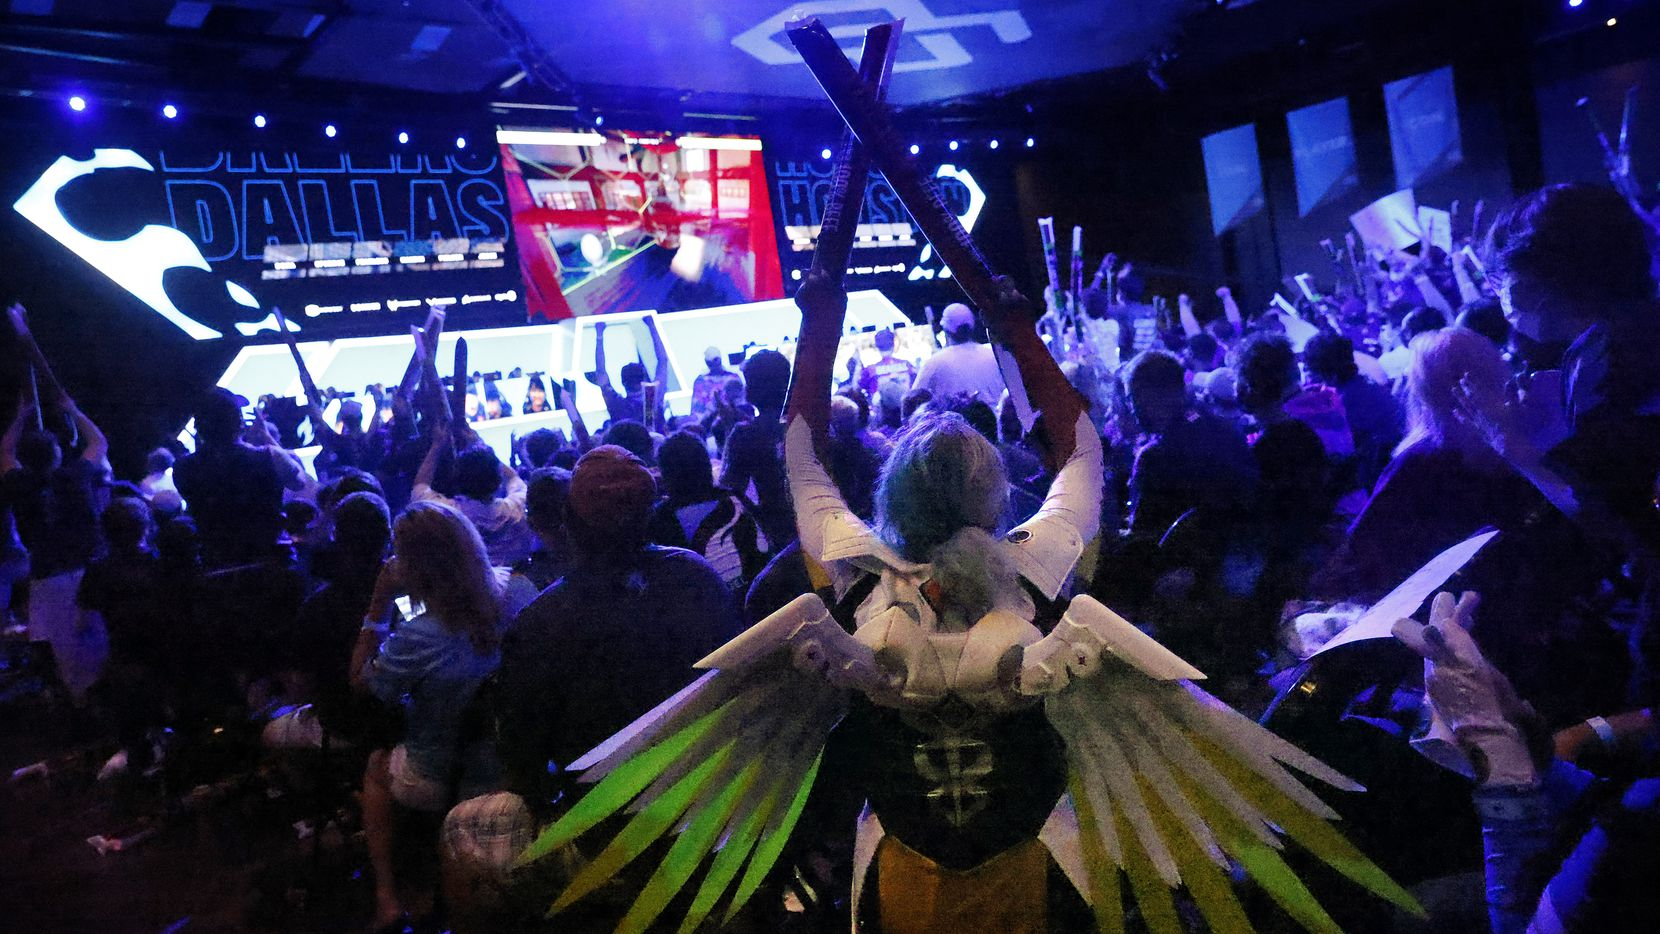 Dallas Fuel fan Hope Hopkins of Alvarado, Texas came dressed as Mercy, a character from Overwatch League. She another fans cheered as the Fuel won a map during their match against the Houston Outlaws at Esports Stadium Arlington Friday, July 9, 2021.